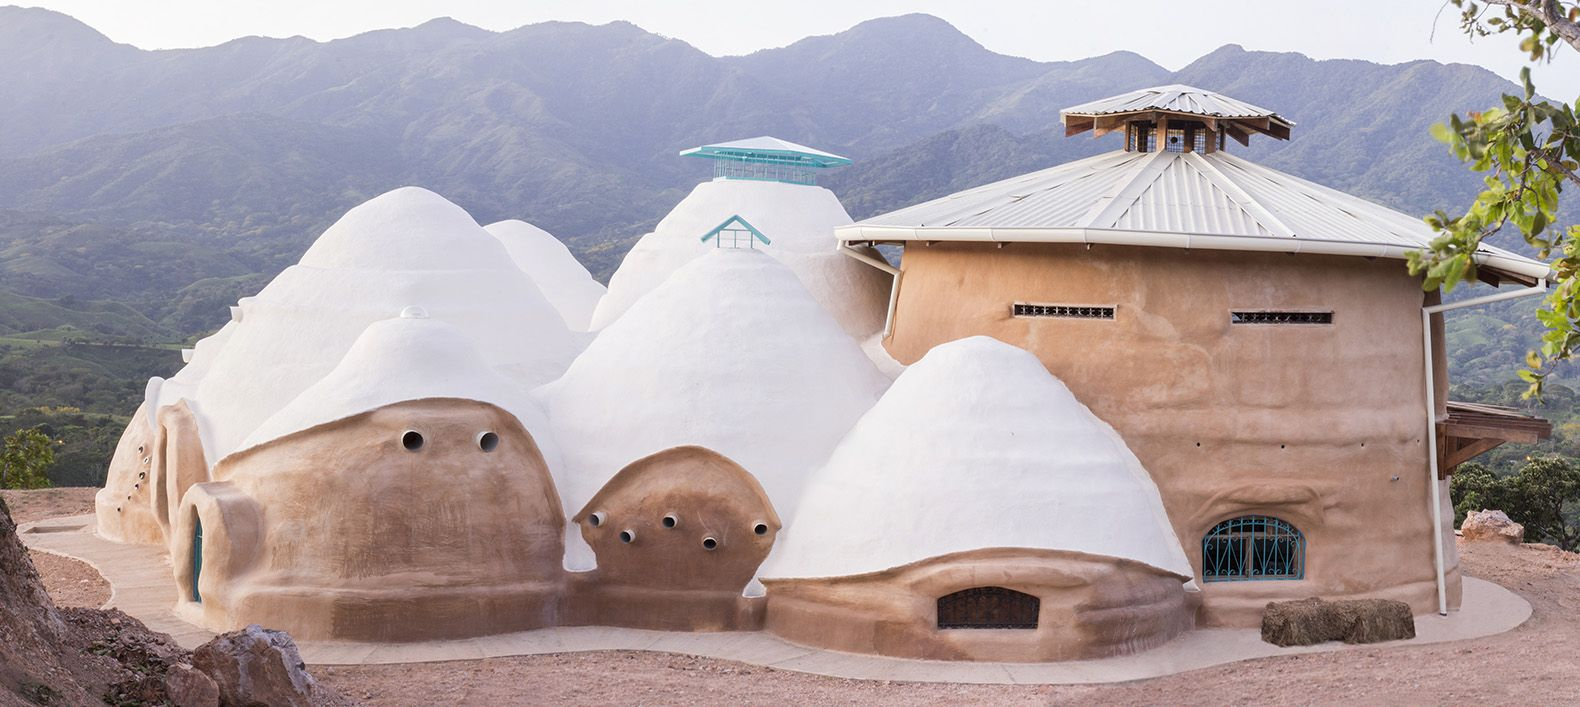 Earthbag Homes Plans Bioclimatic Dome Home In Costa Rica Built With Nader Khalilis